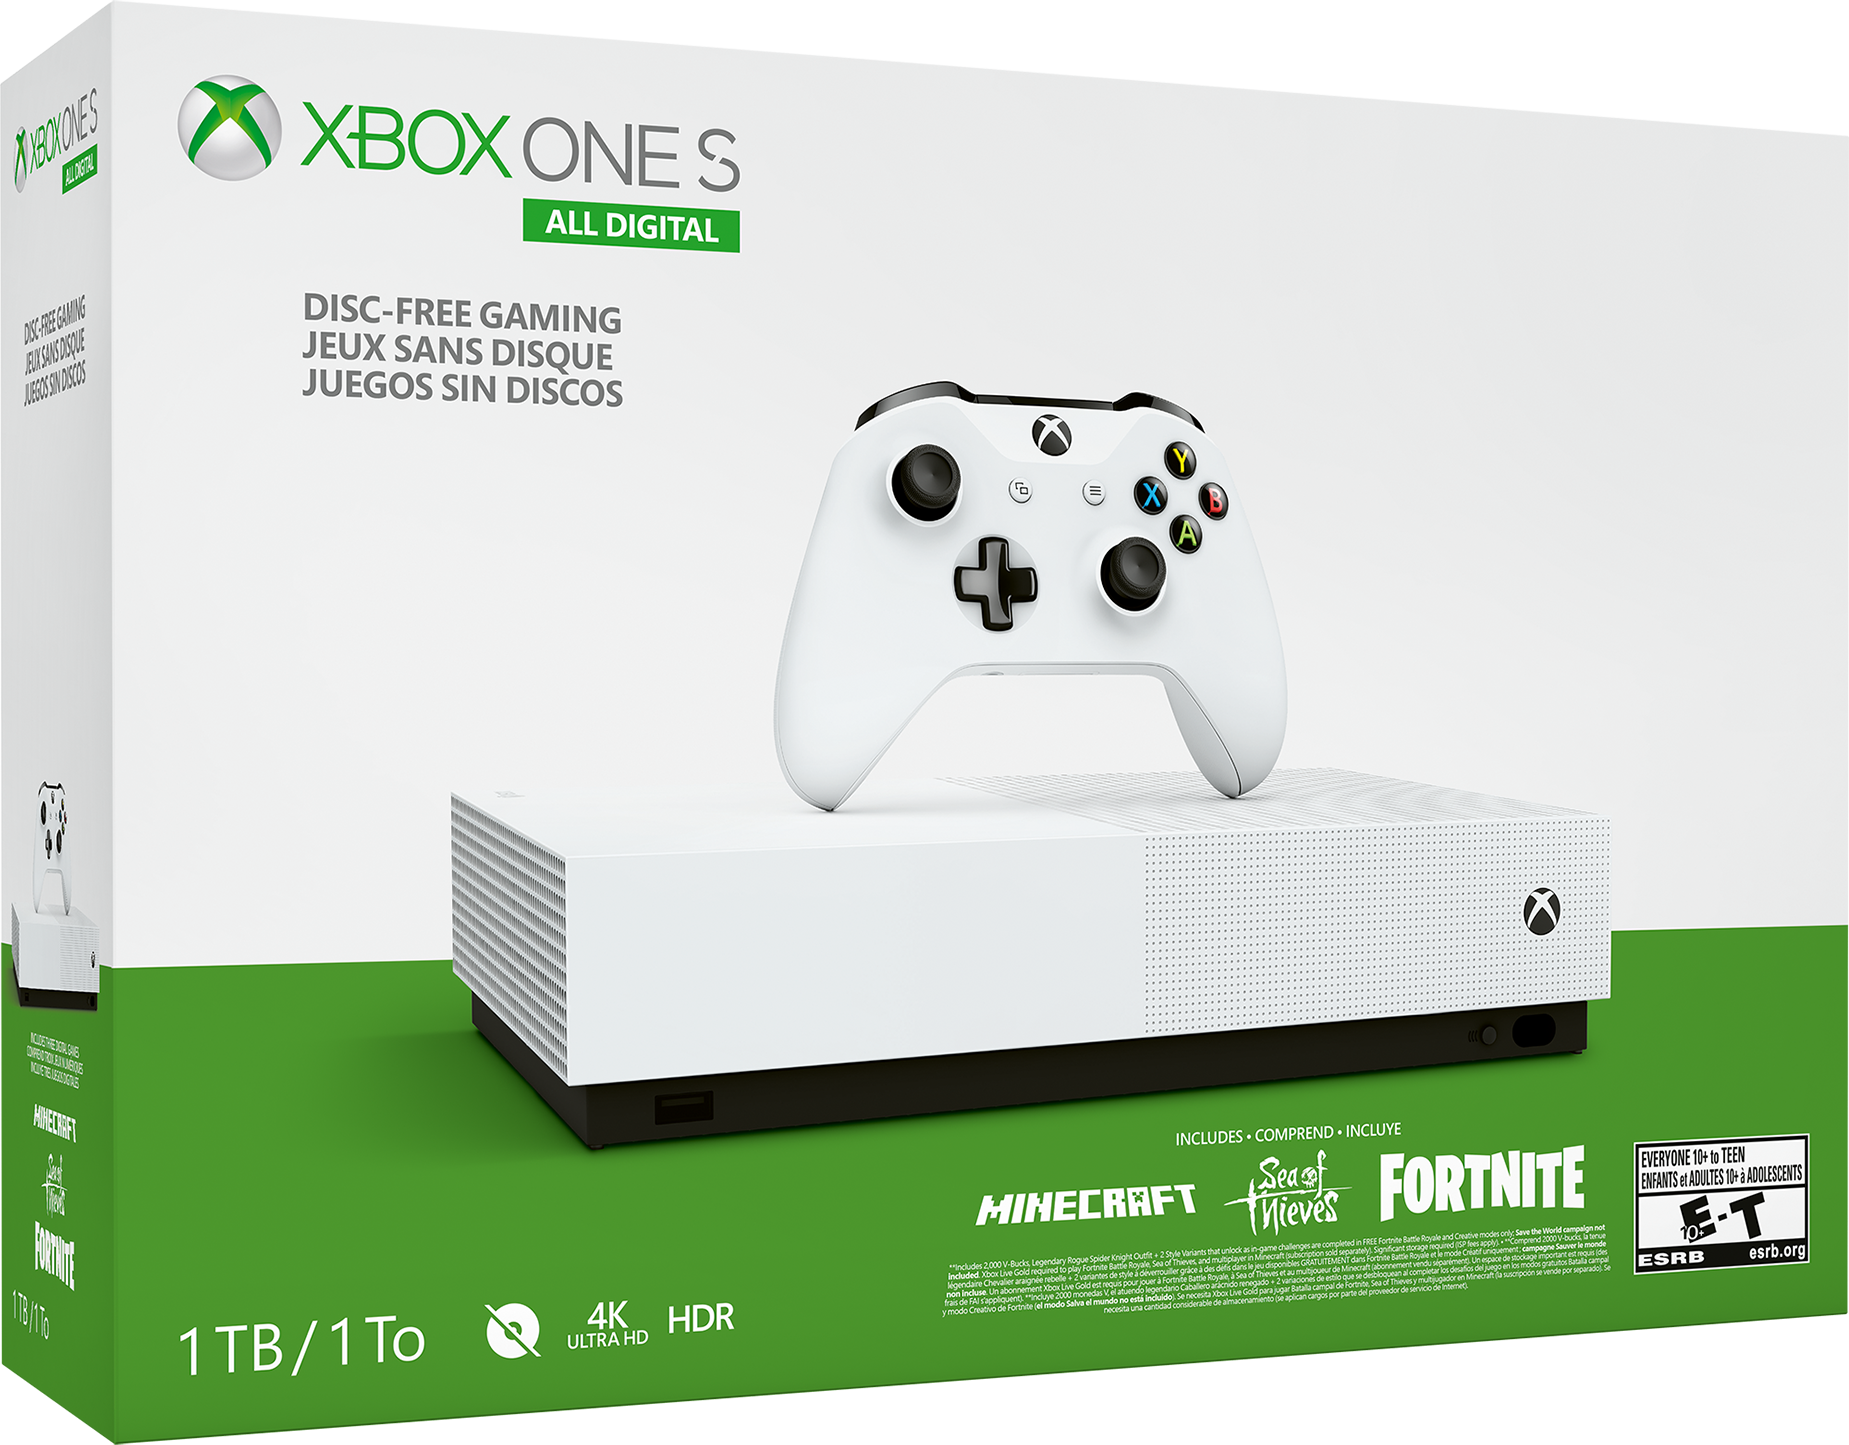 The New Xbox One S All Digital Edition